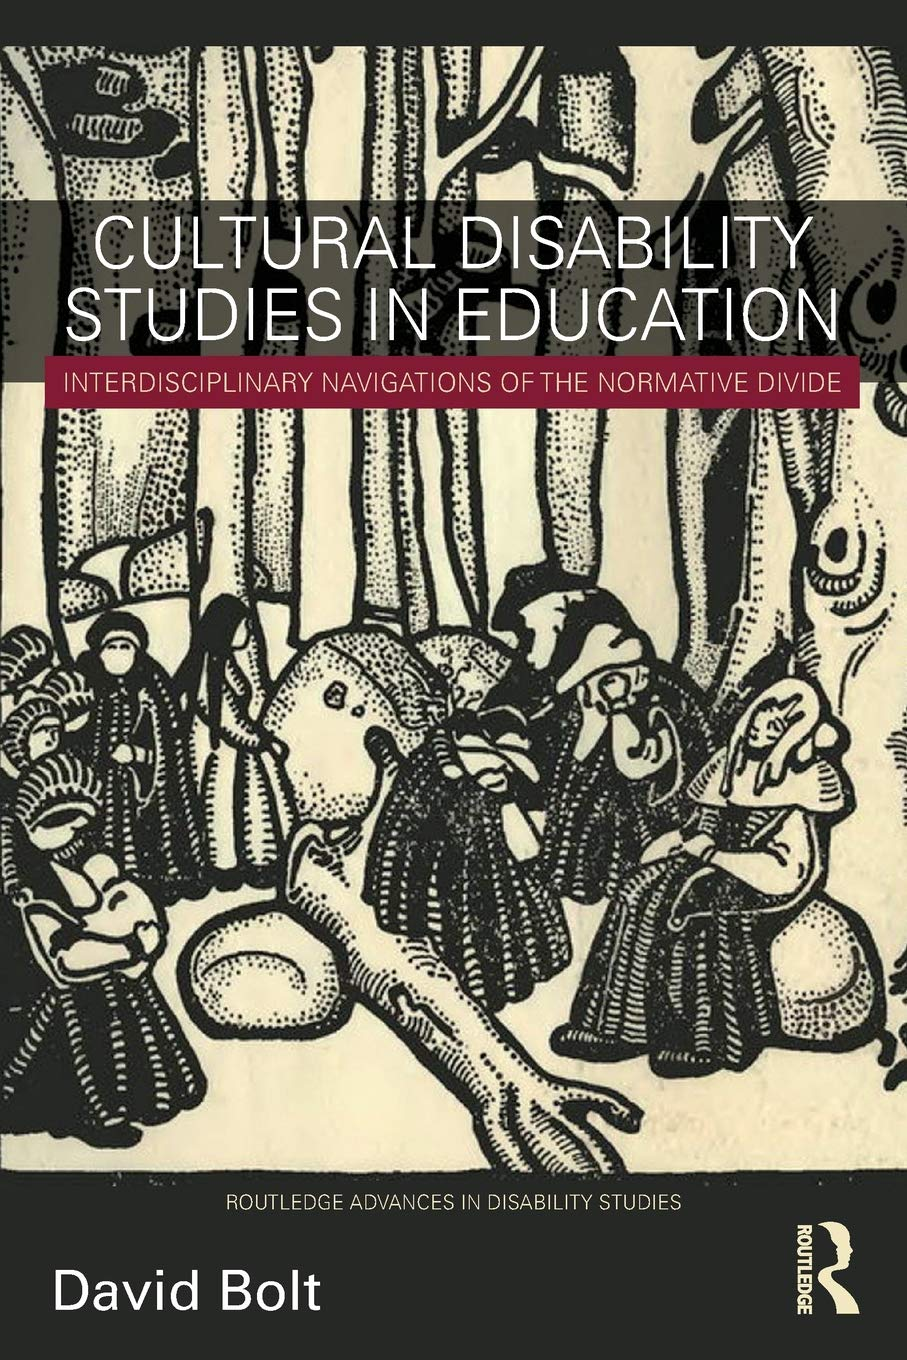 Cultural Disability Studies In Education  Routledge Advances In Disability Studies